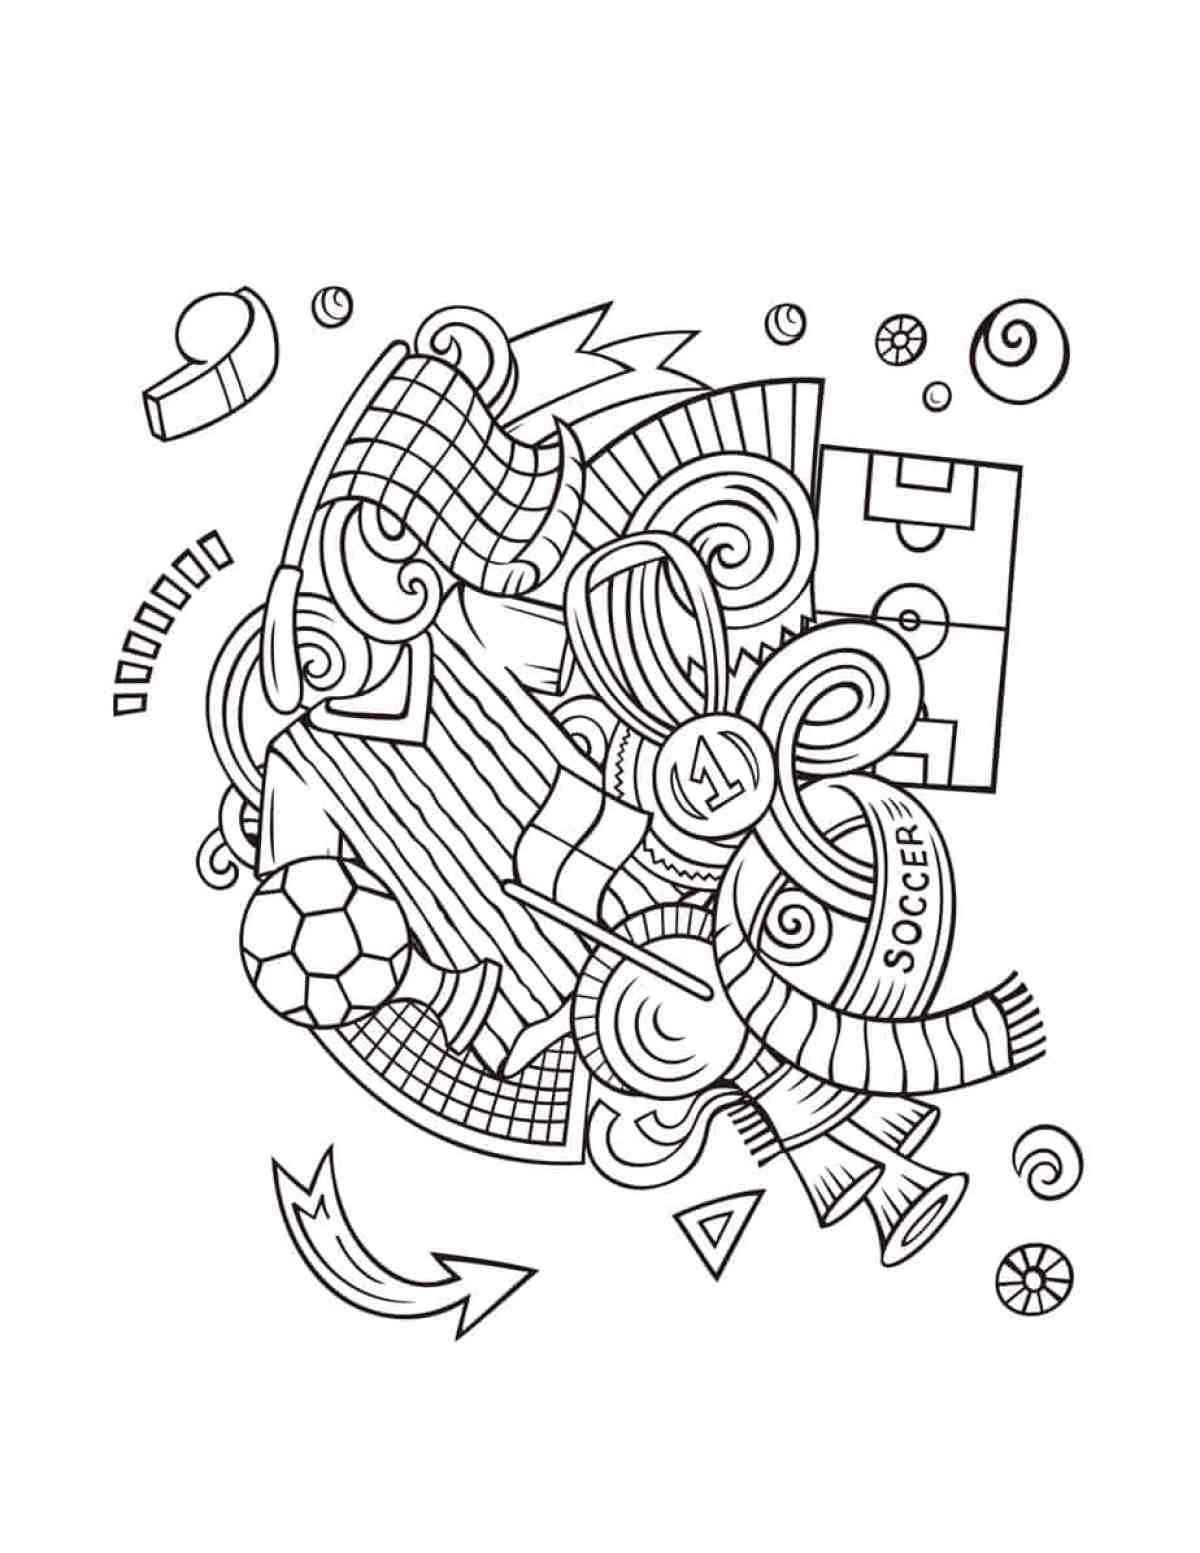 2018 World Cup coloring book for Adult